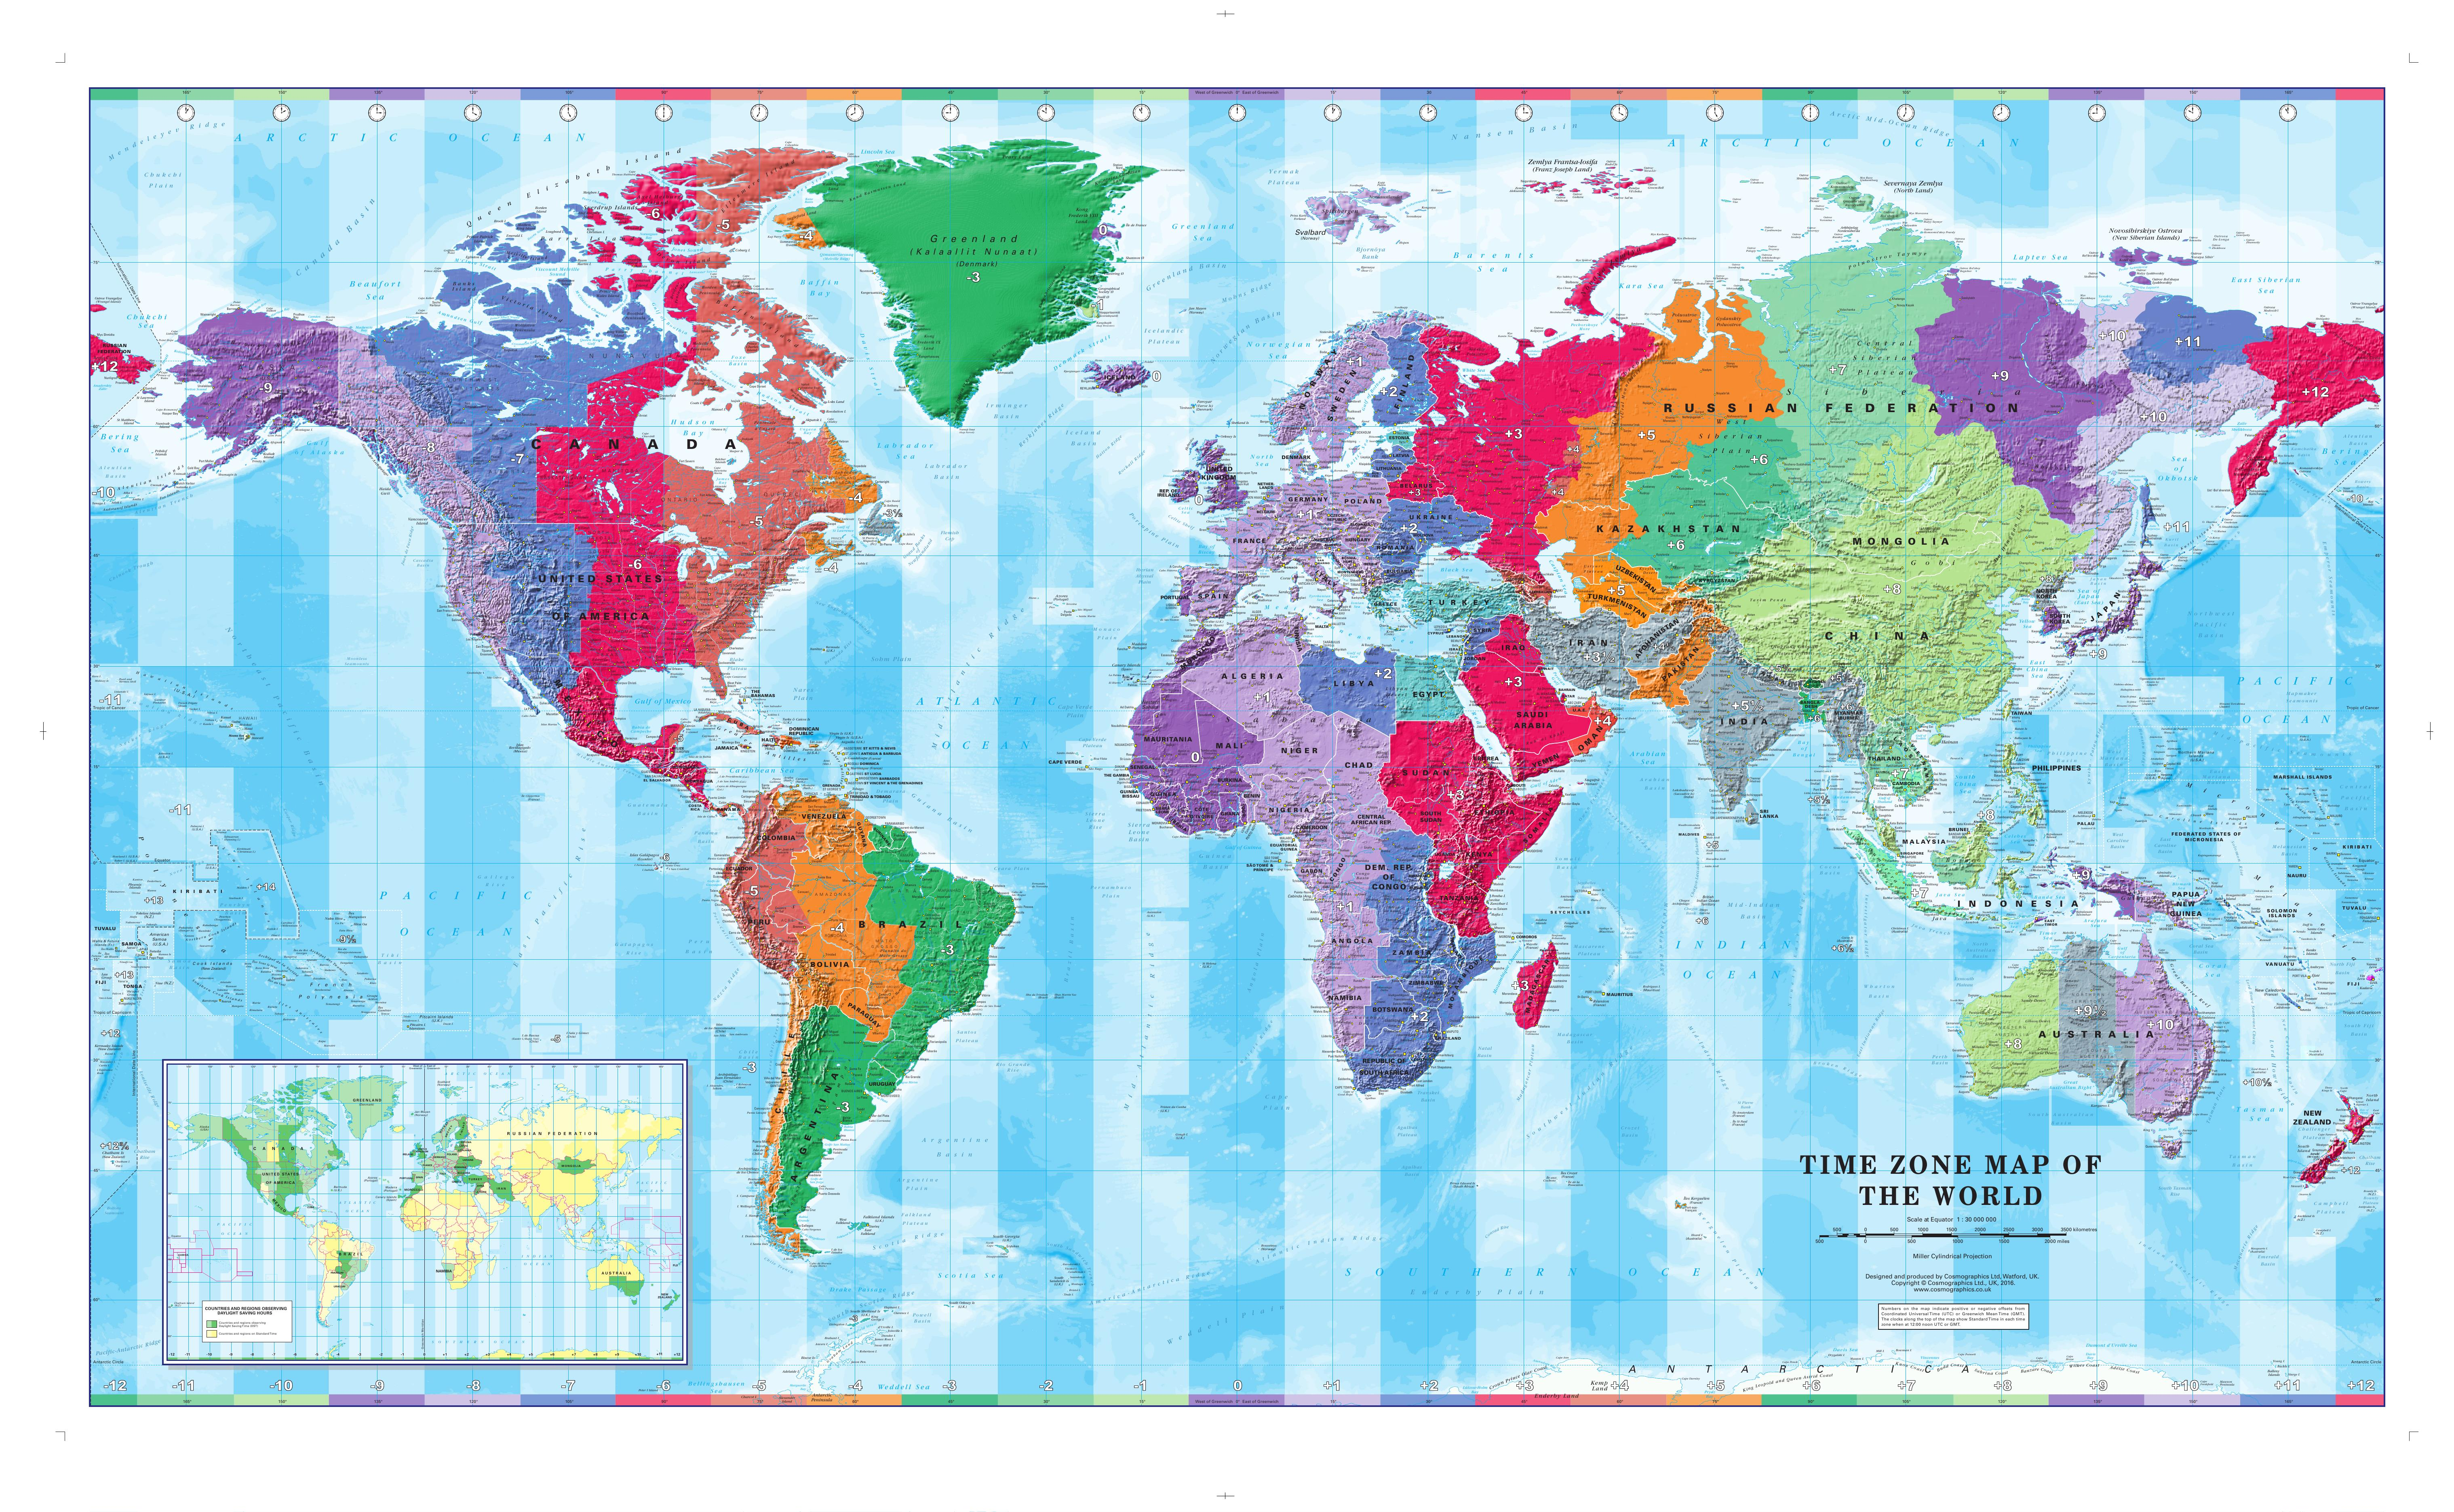 World Map Time Zones 1:30 Mio